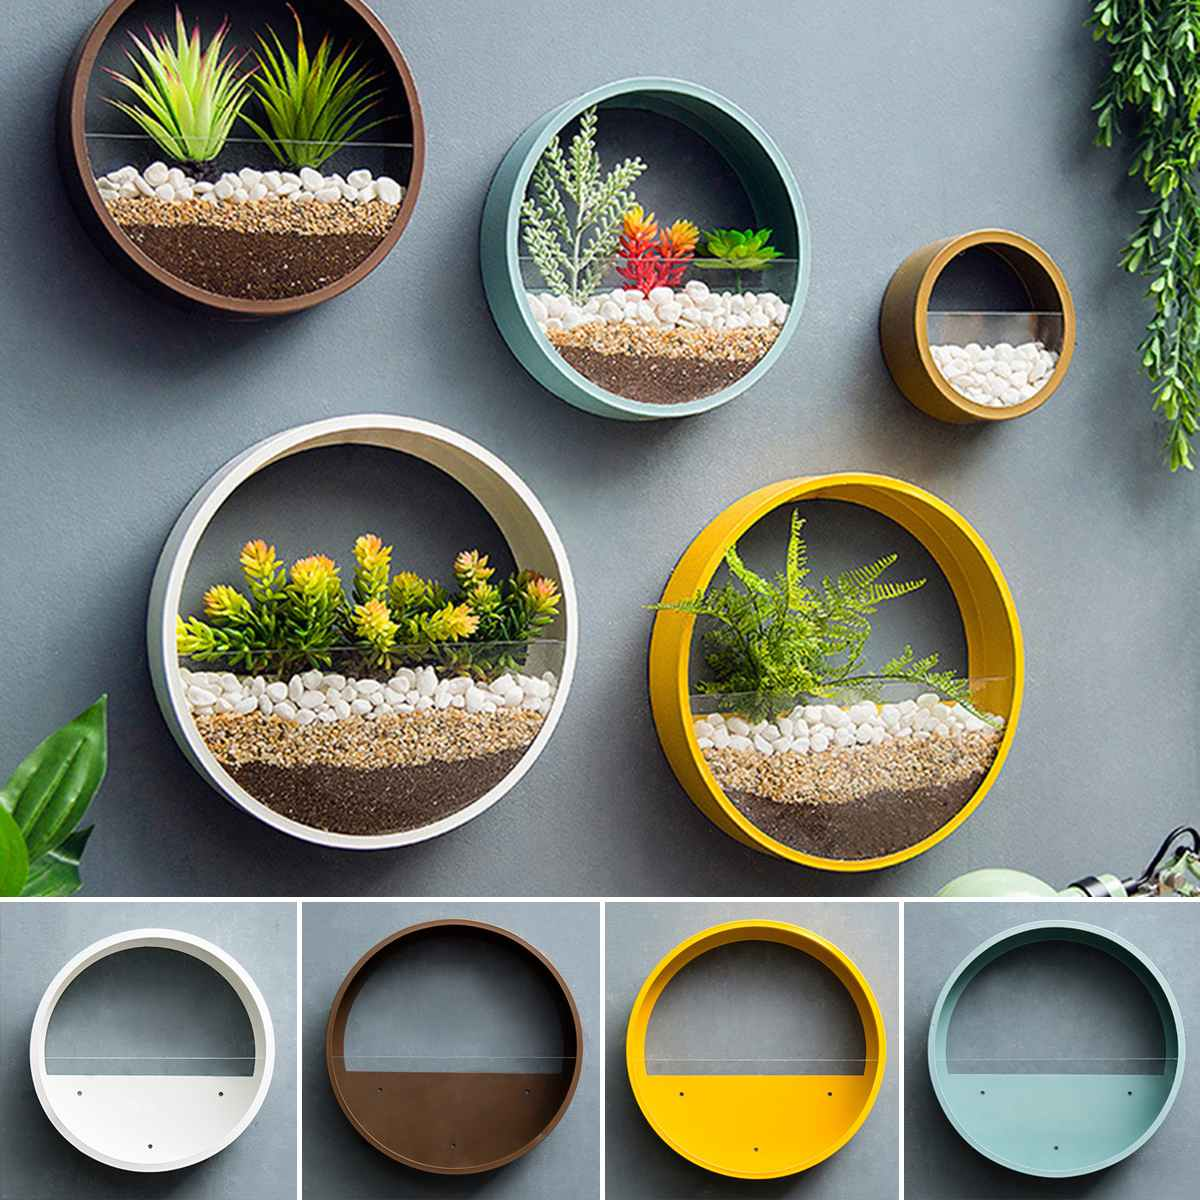 Modern Round Iron Wall Vase Home Living Room Restaurant Hanging Flower Pot Wall Decor Succulent Plant Planters Art Glass Vases